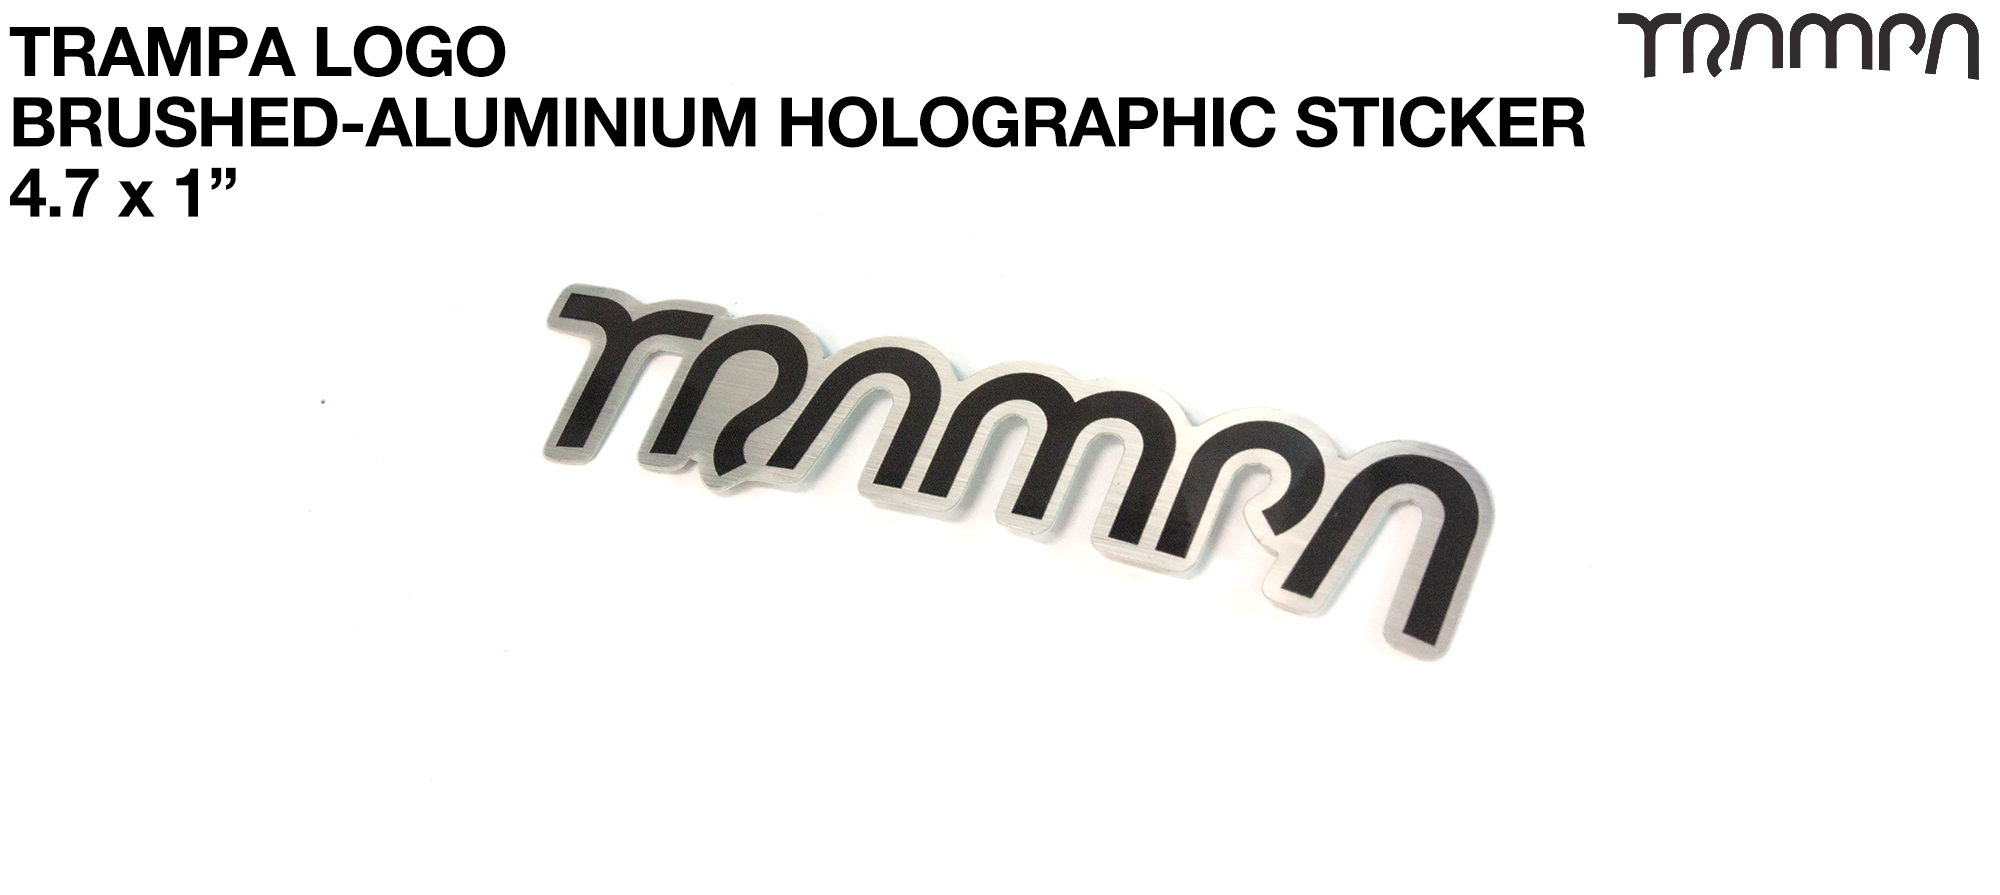 TRAMPA Brushed-Aluminium Holographic Sticker